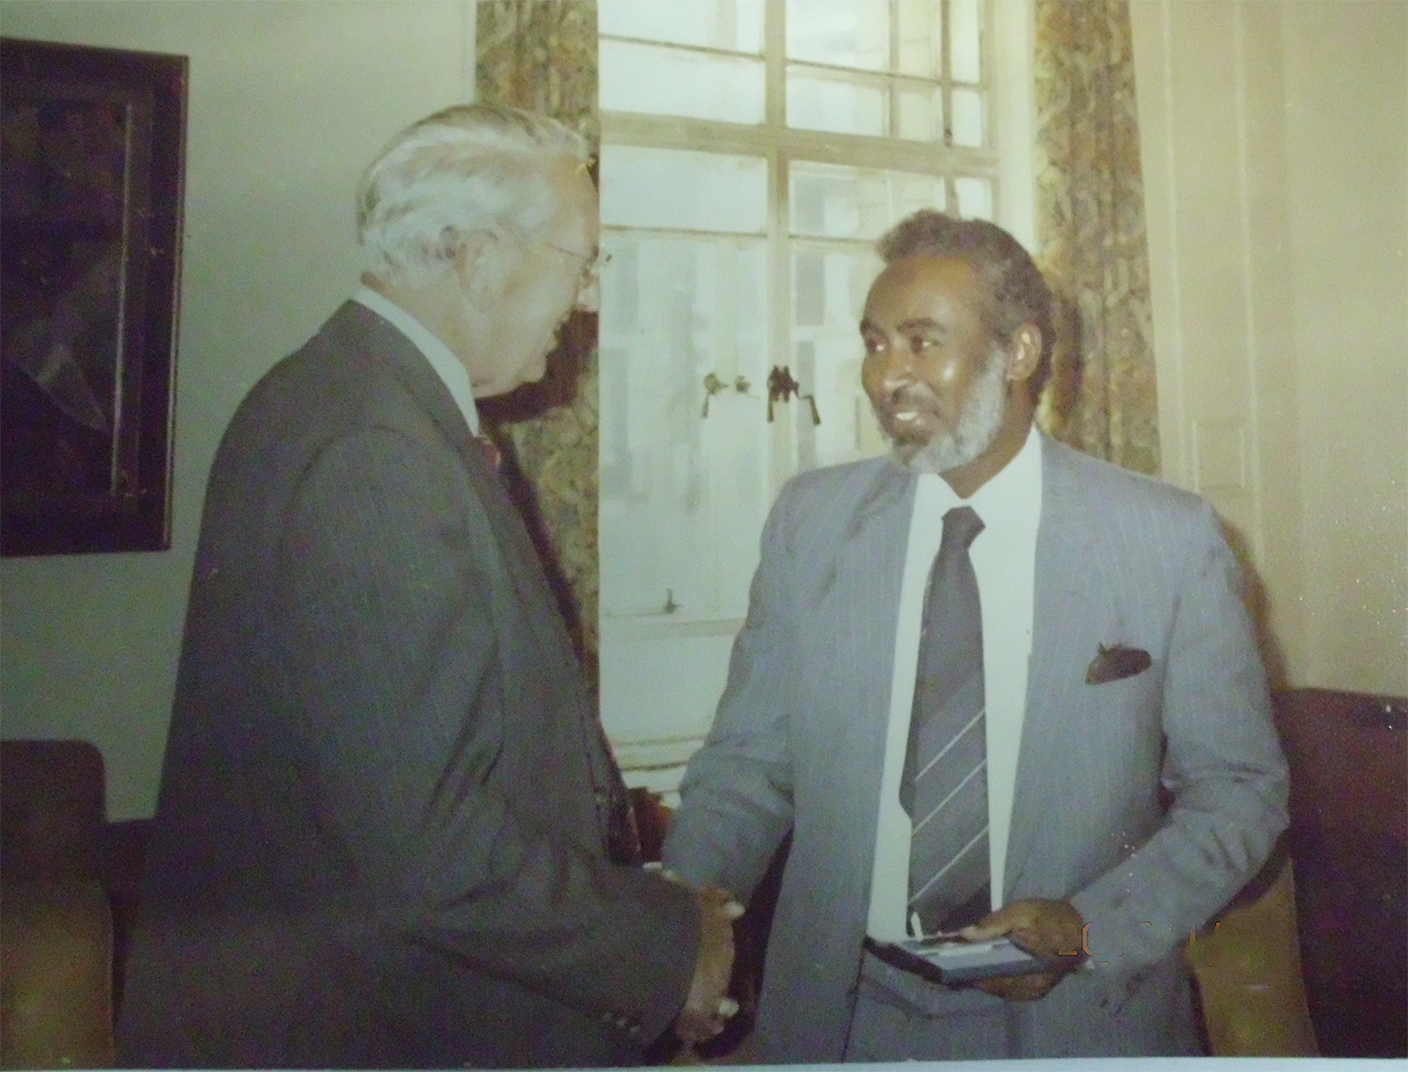 Prof-Elsheikh-receiving-Ademola-prize-of-London-school-of-tropical-medicine-and-hygiene-for-his-extraordinary-work-in-the-tropics-.Presented-by-Dean-Smith-at-the-London-school-1987